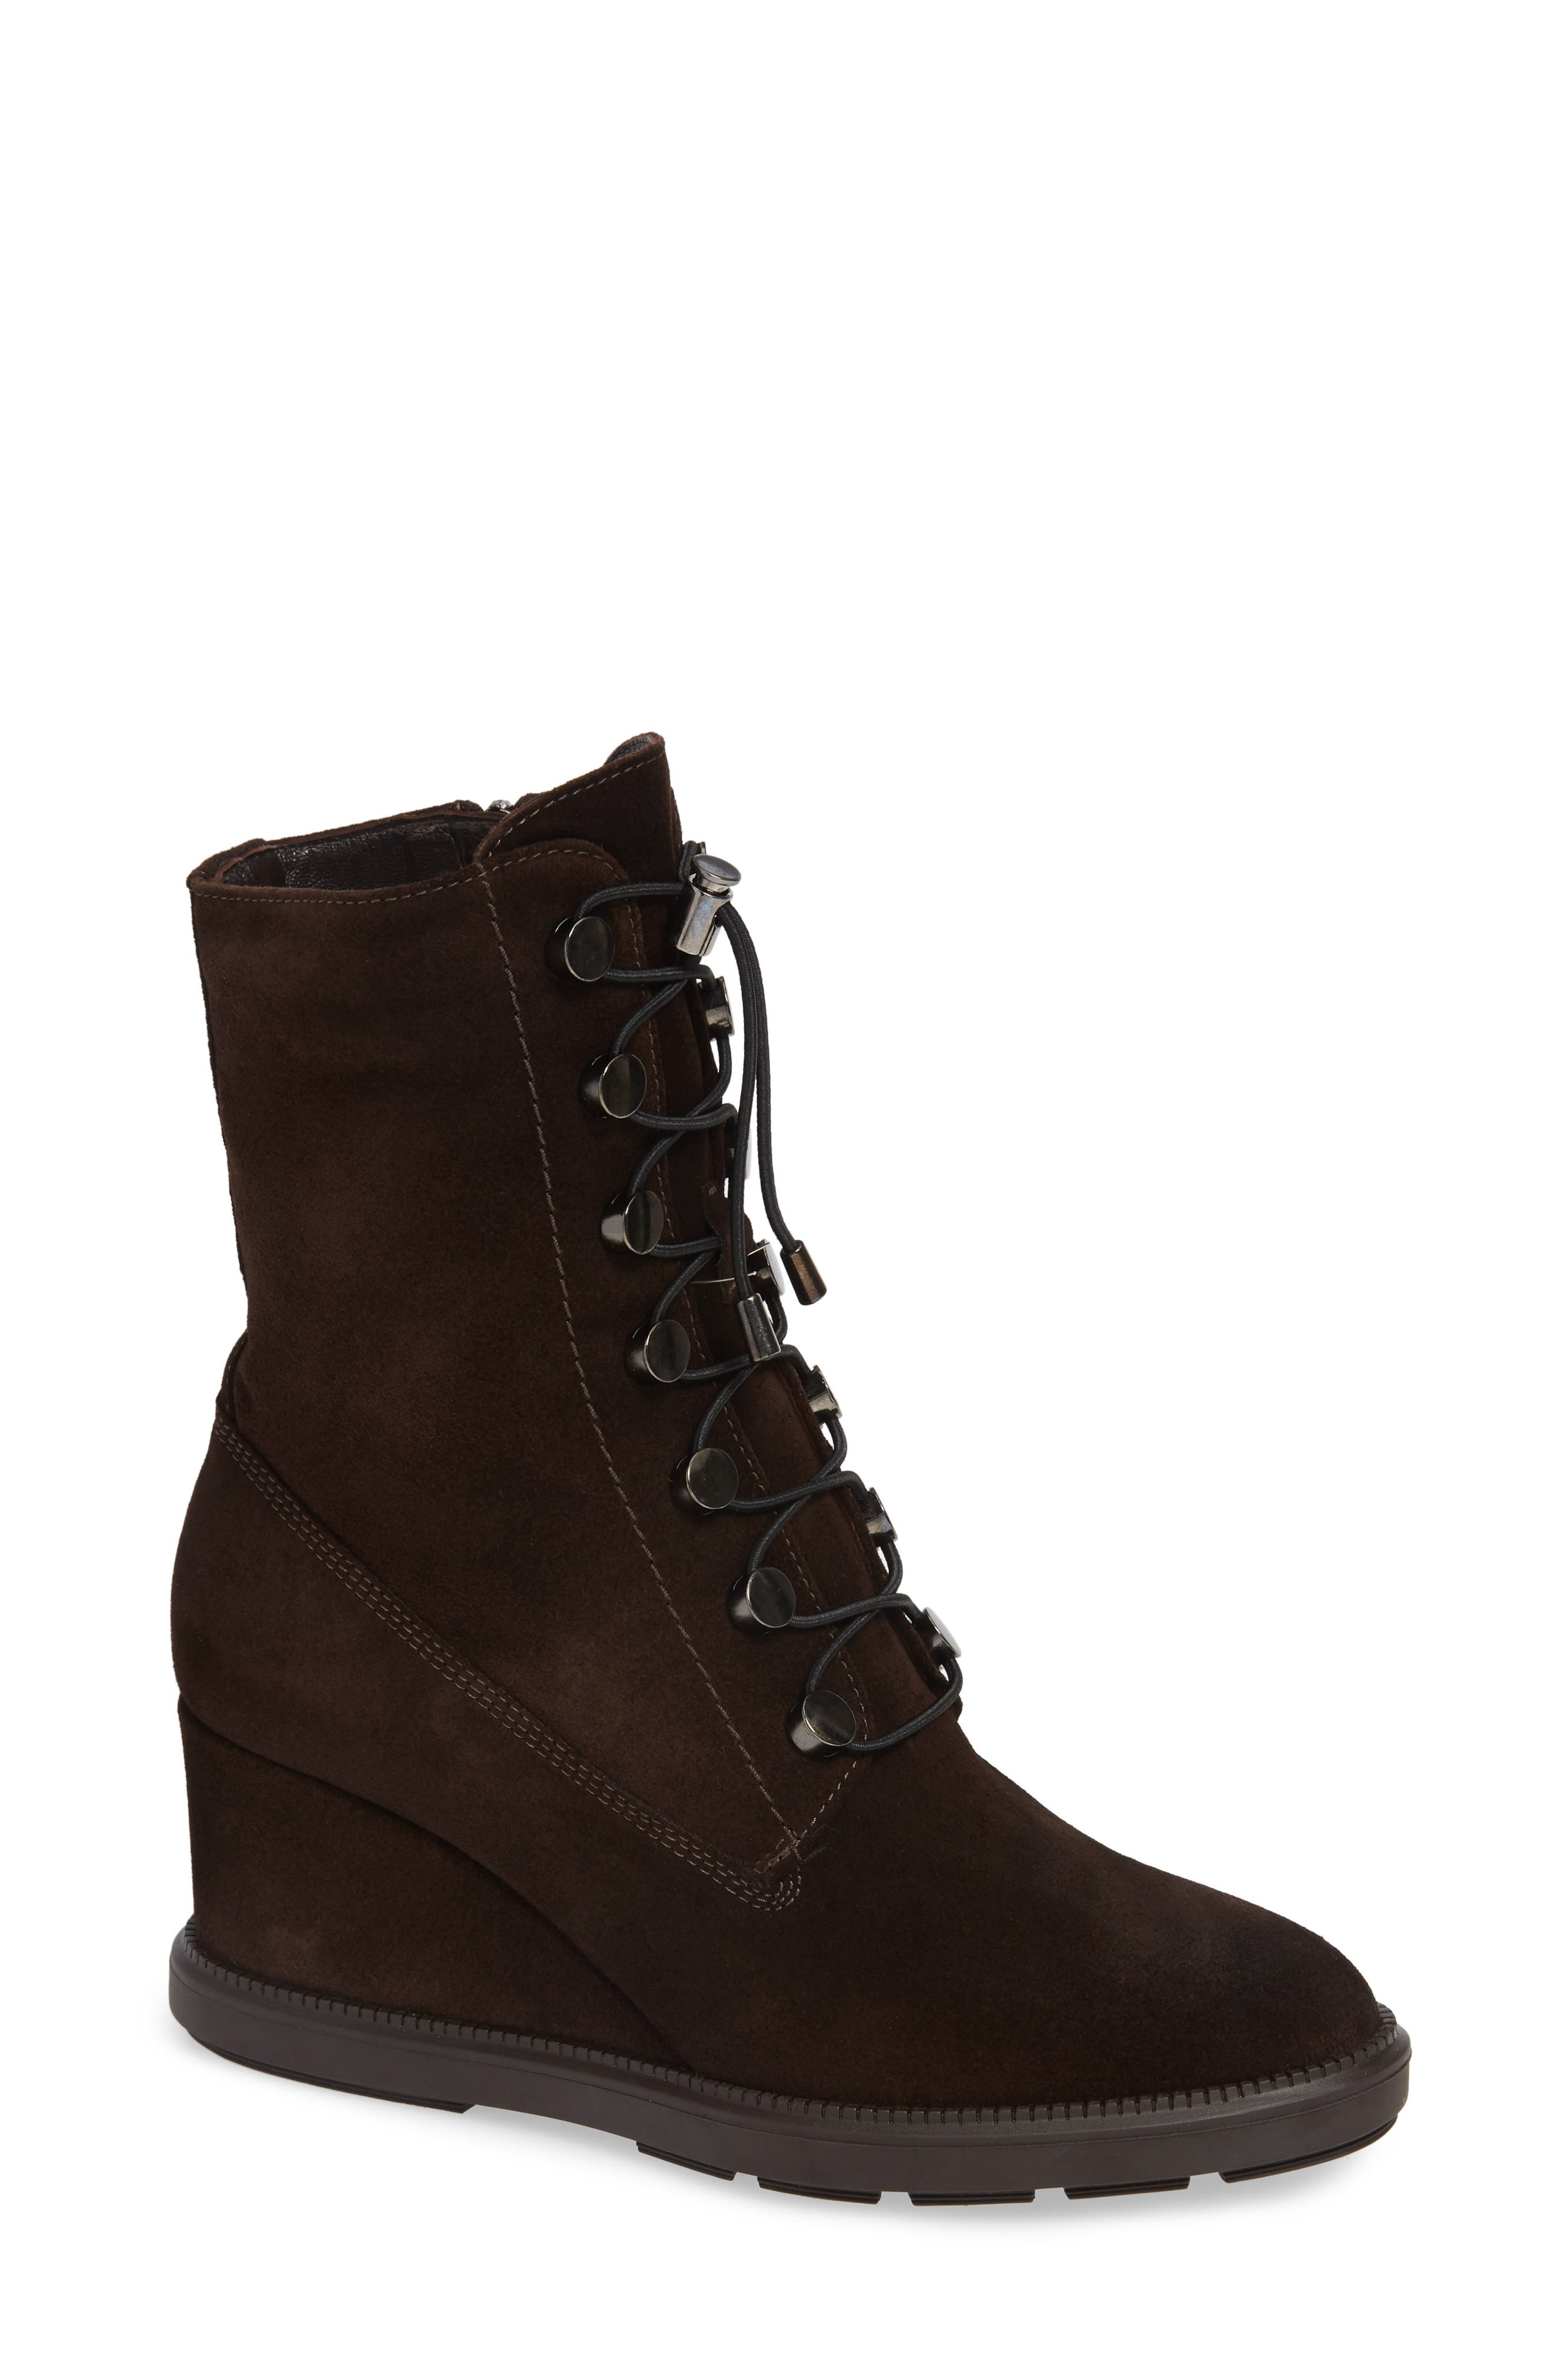 Campbell Wedge Boot,                         Main,                         color, ESPRESSO SUEDE